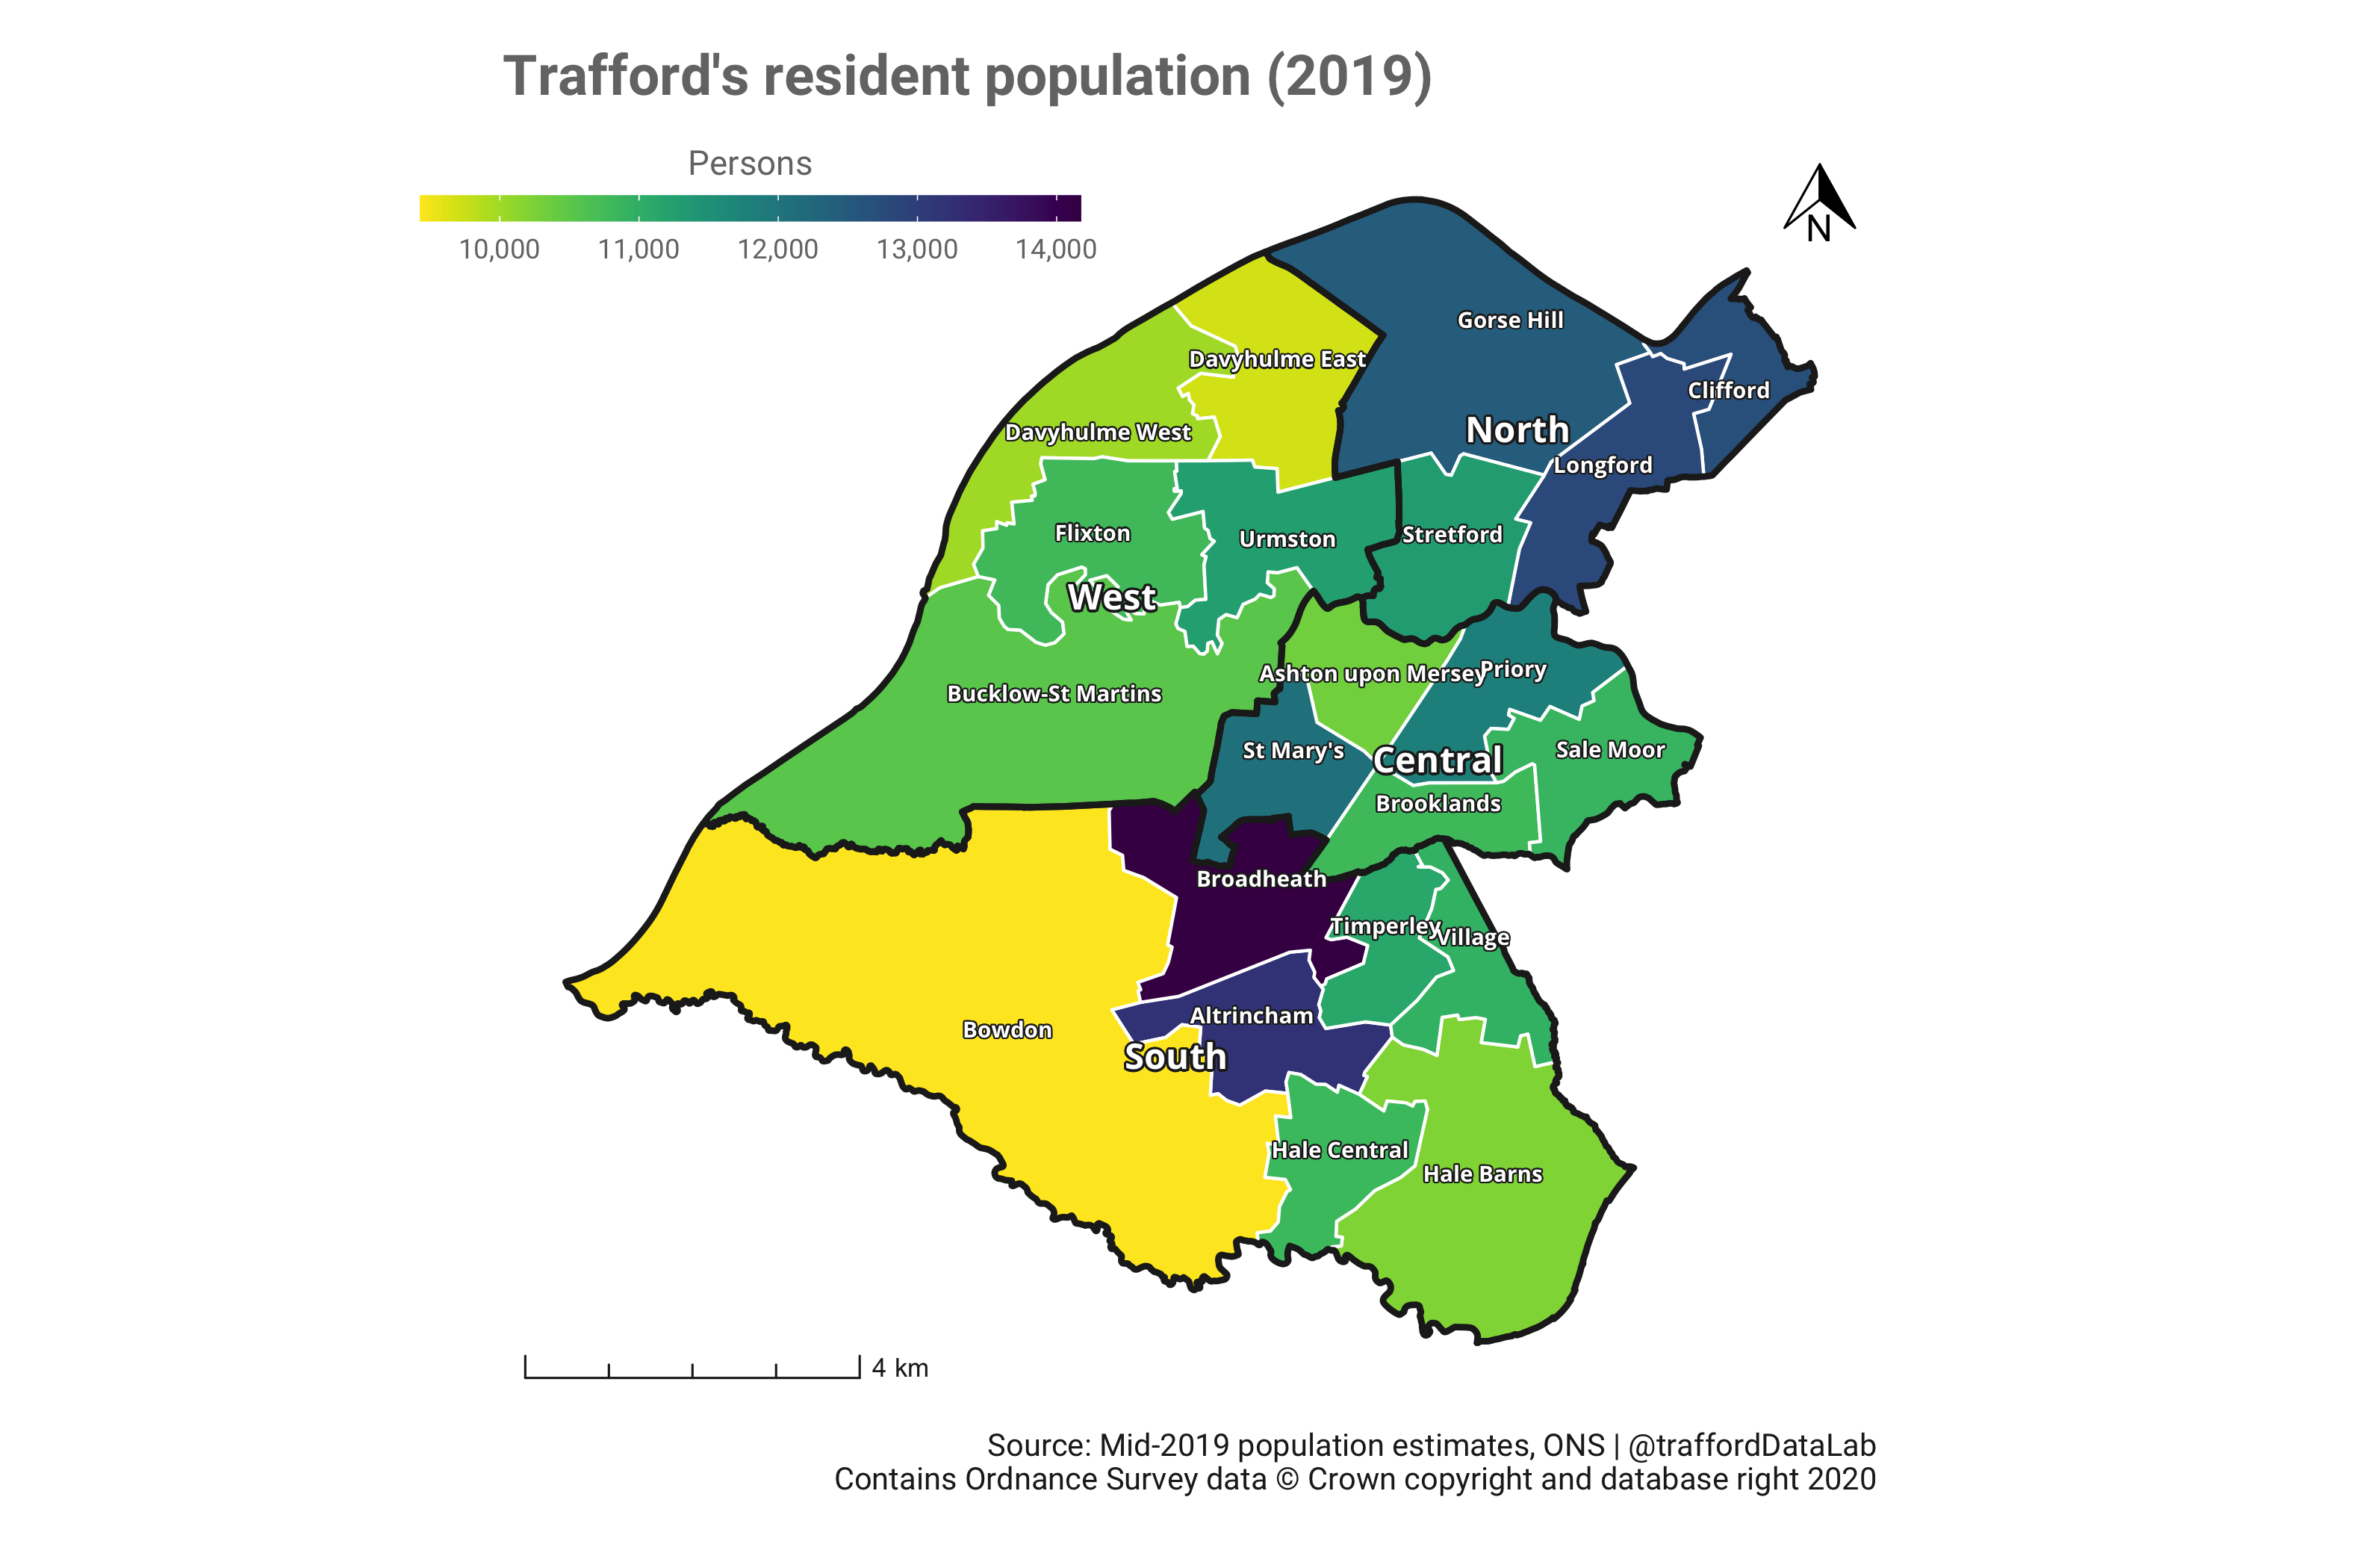 Map of Trafford showing the 21 wards coloured according to their mid-2019 population estimates.